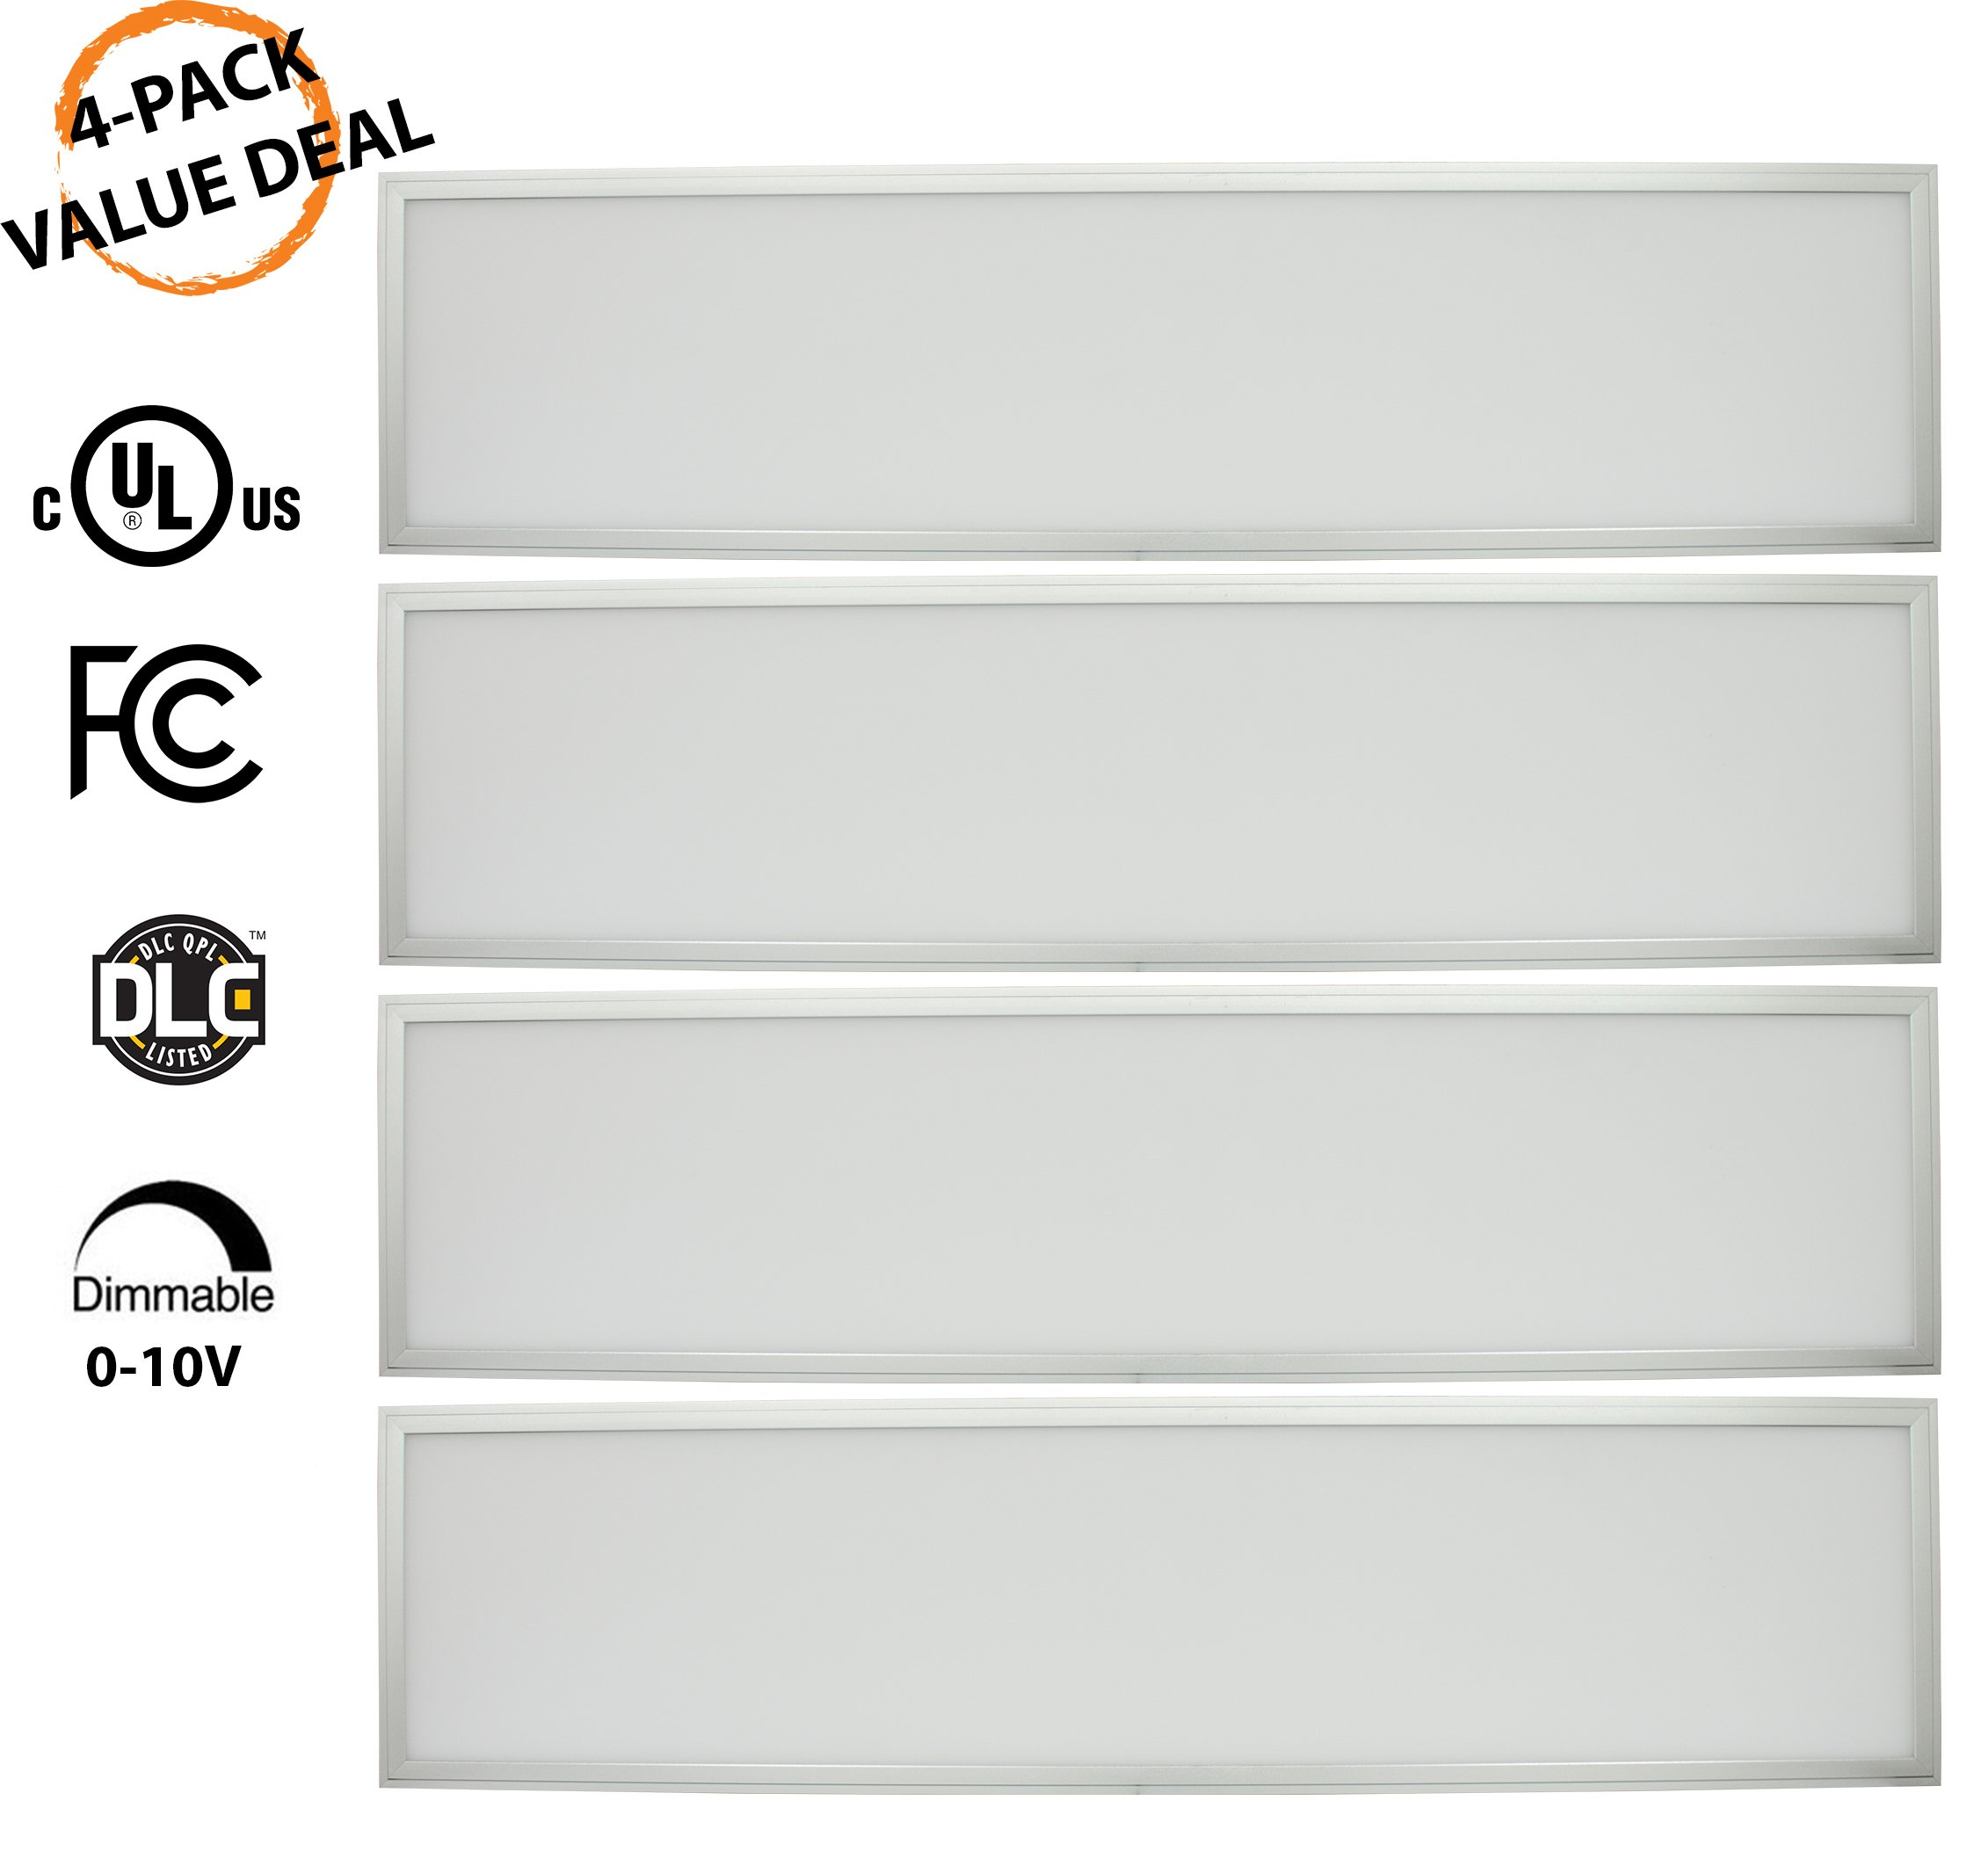 1x4 Panel Troffer Edge-Lit Flat (4 PACK) 40W; 4600 Lumens= 115LM/W; 120V-277V AC/DC; 0-10V Dimmable; 50,000 Life Hours; CRI>83; 5 Year Warranty; UL/DLC Listed; Cool White 4000K